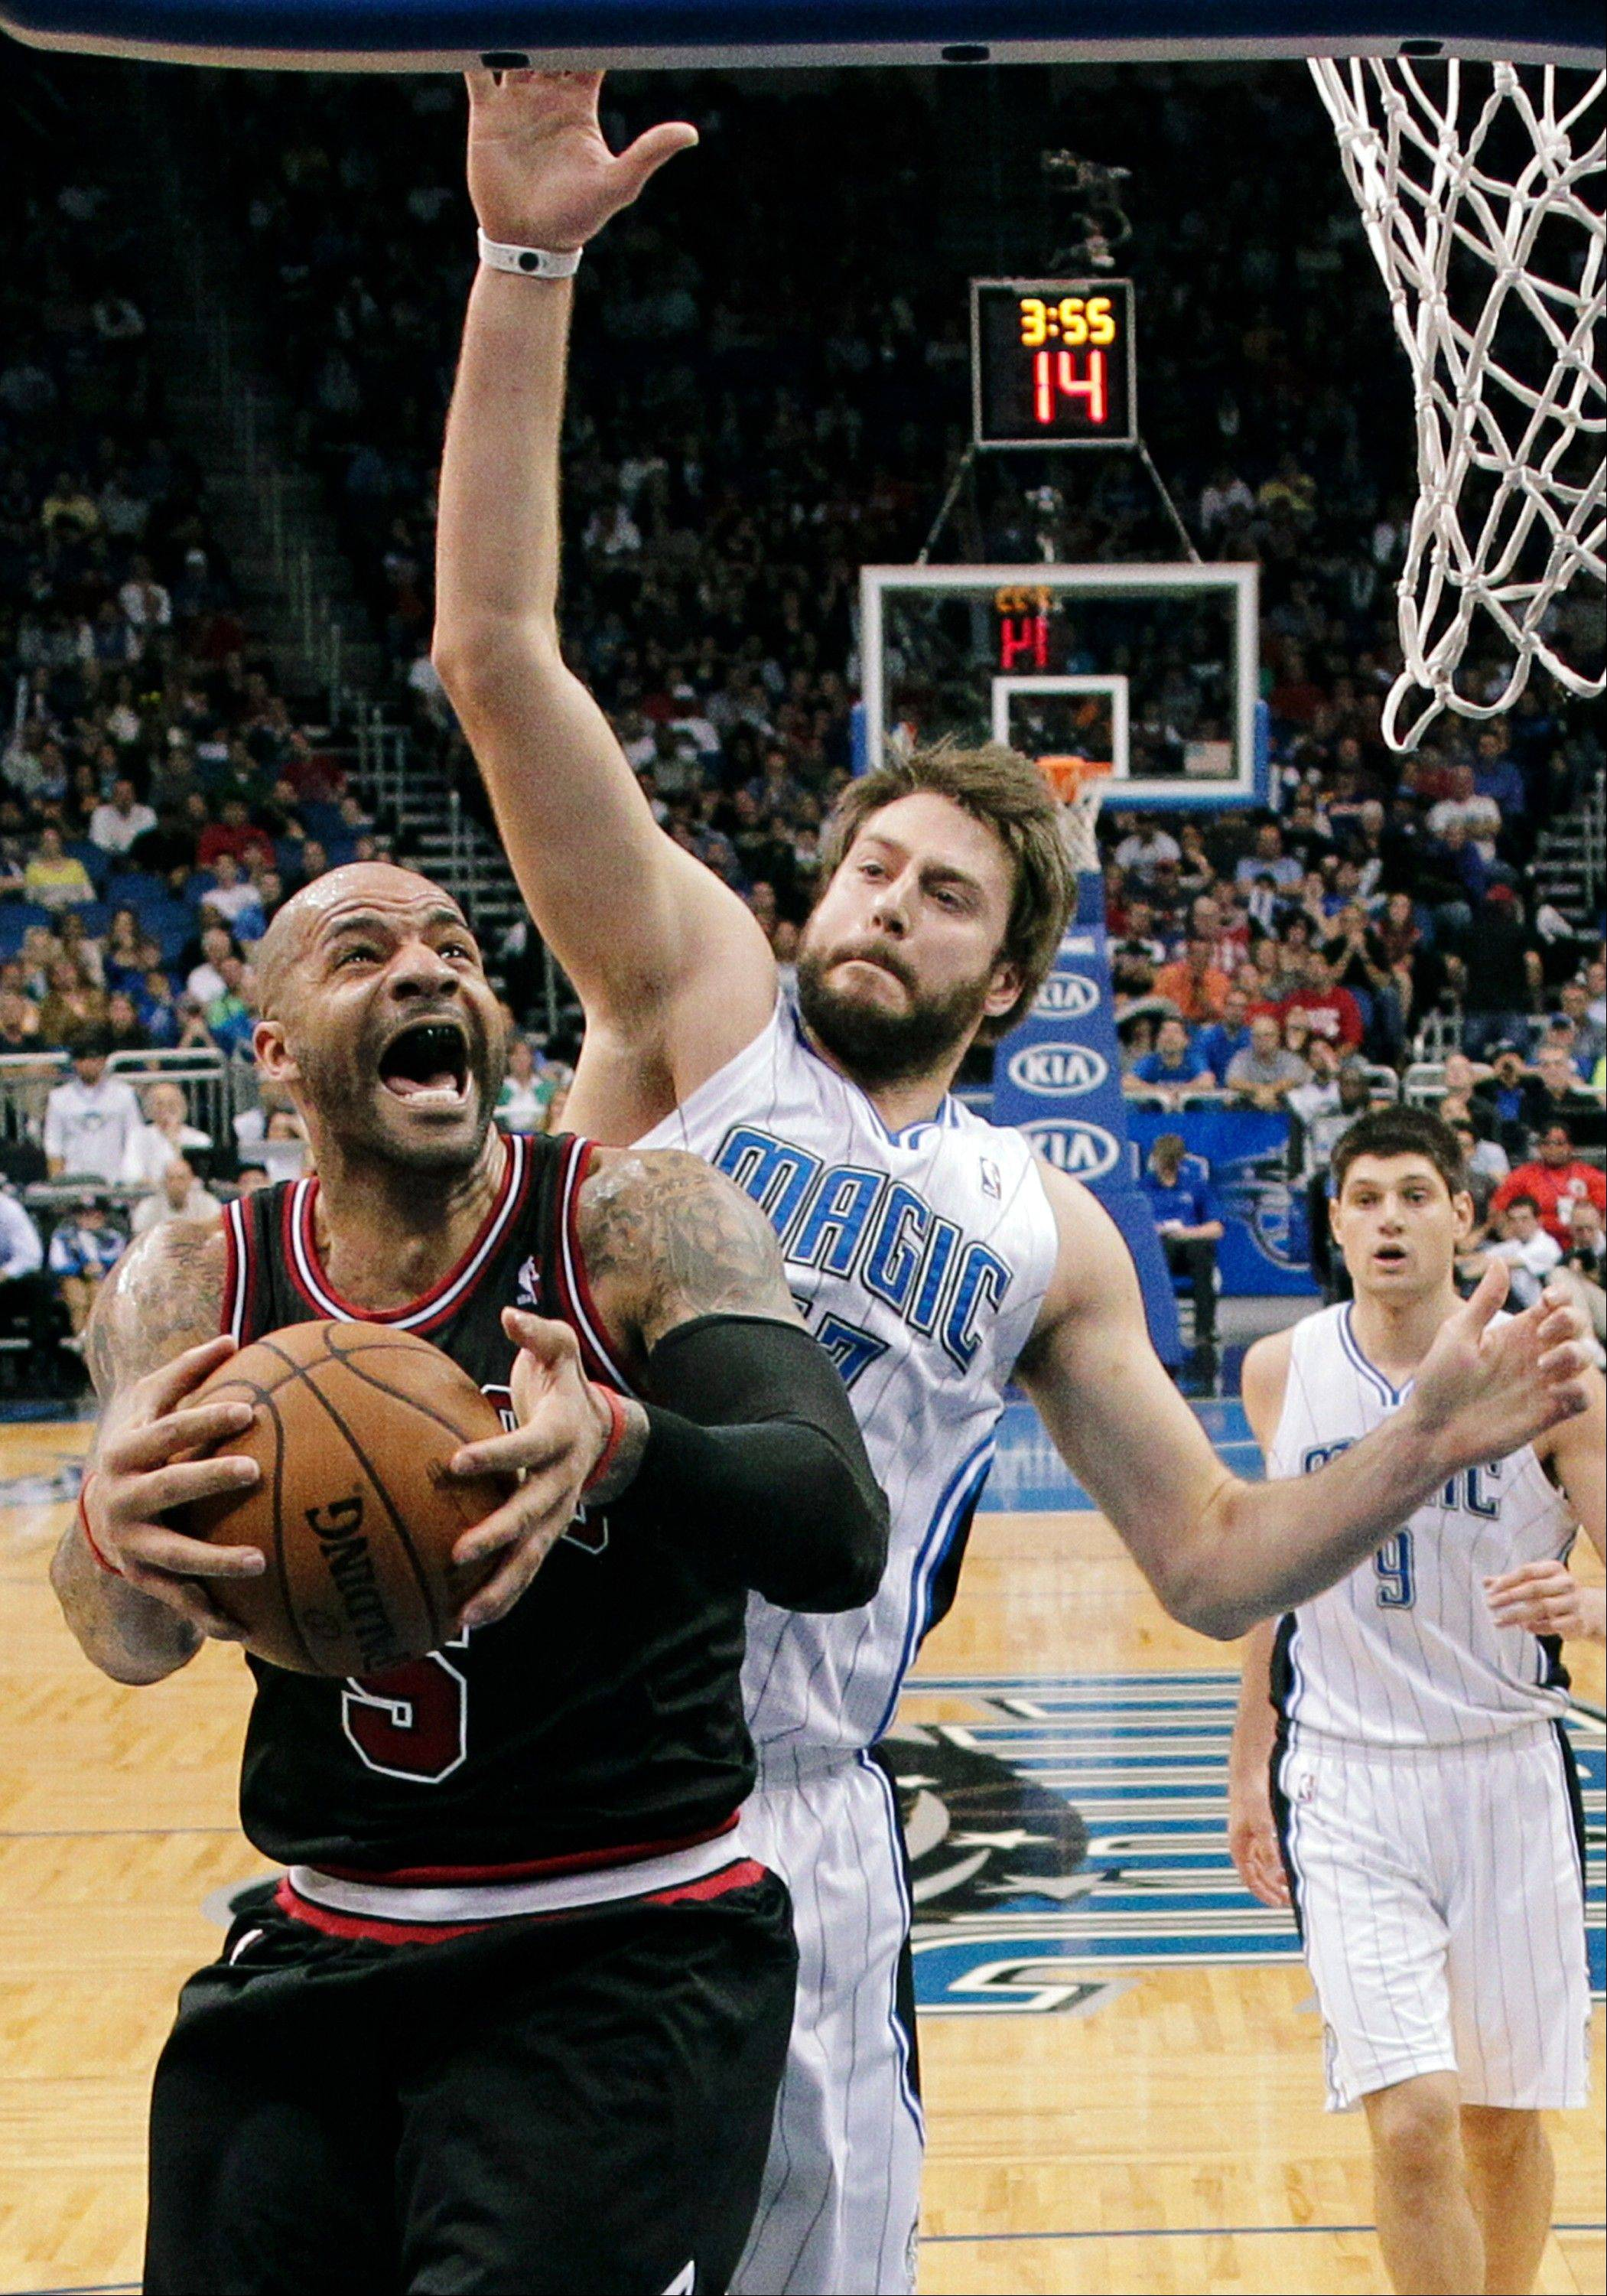 The Bulls� Carlos Boozer, who finished with a season-high 31 points, goes to the basket in front of Orlando�s Josh McRoberts.